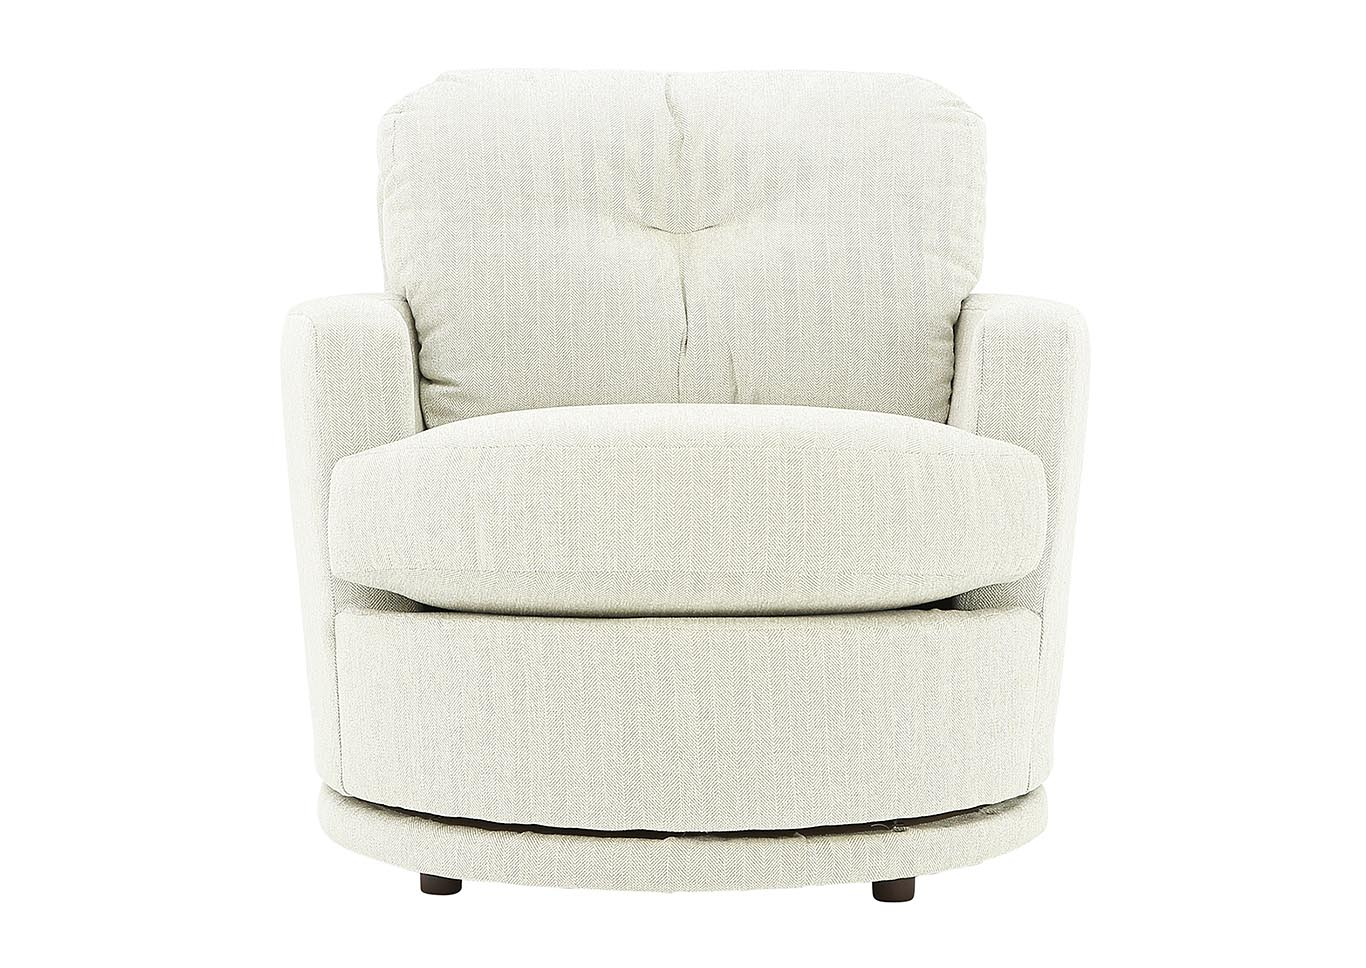 Peachy Ivan Smith Swivel Chair Creativecarmelina Interior Chair Design Creativecarmelinacom